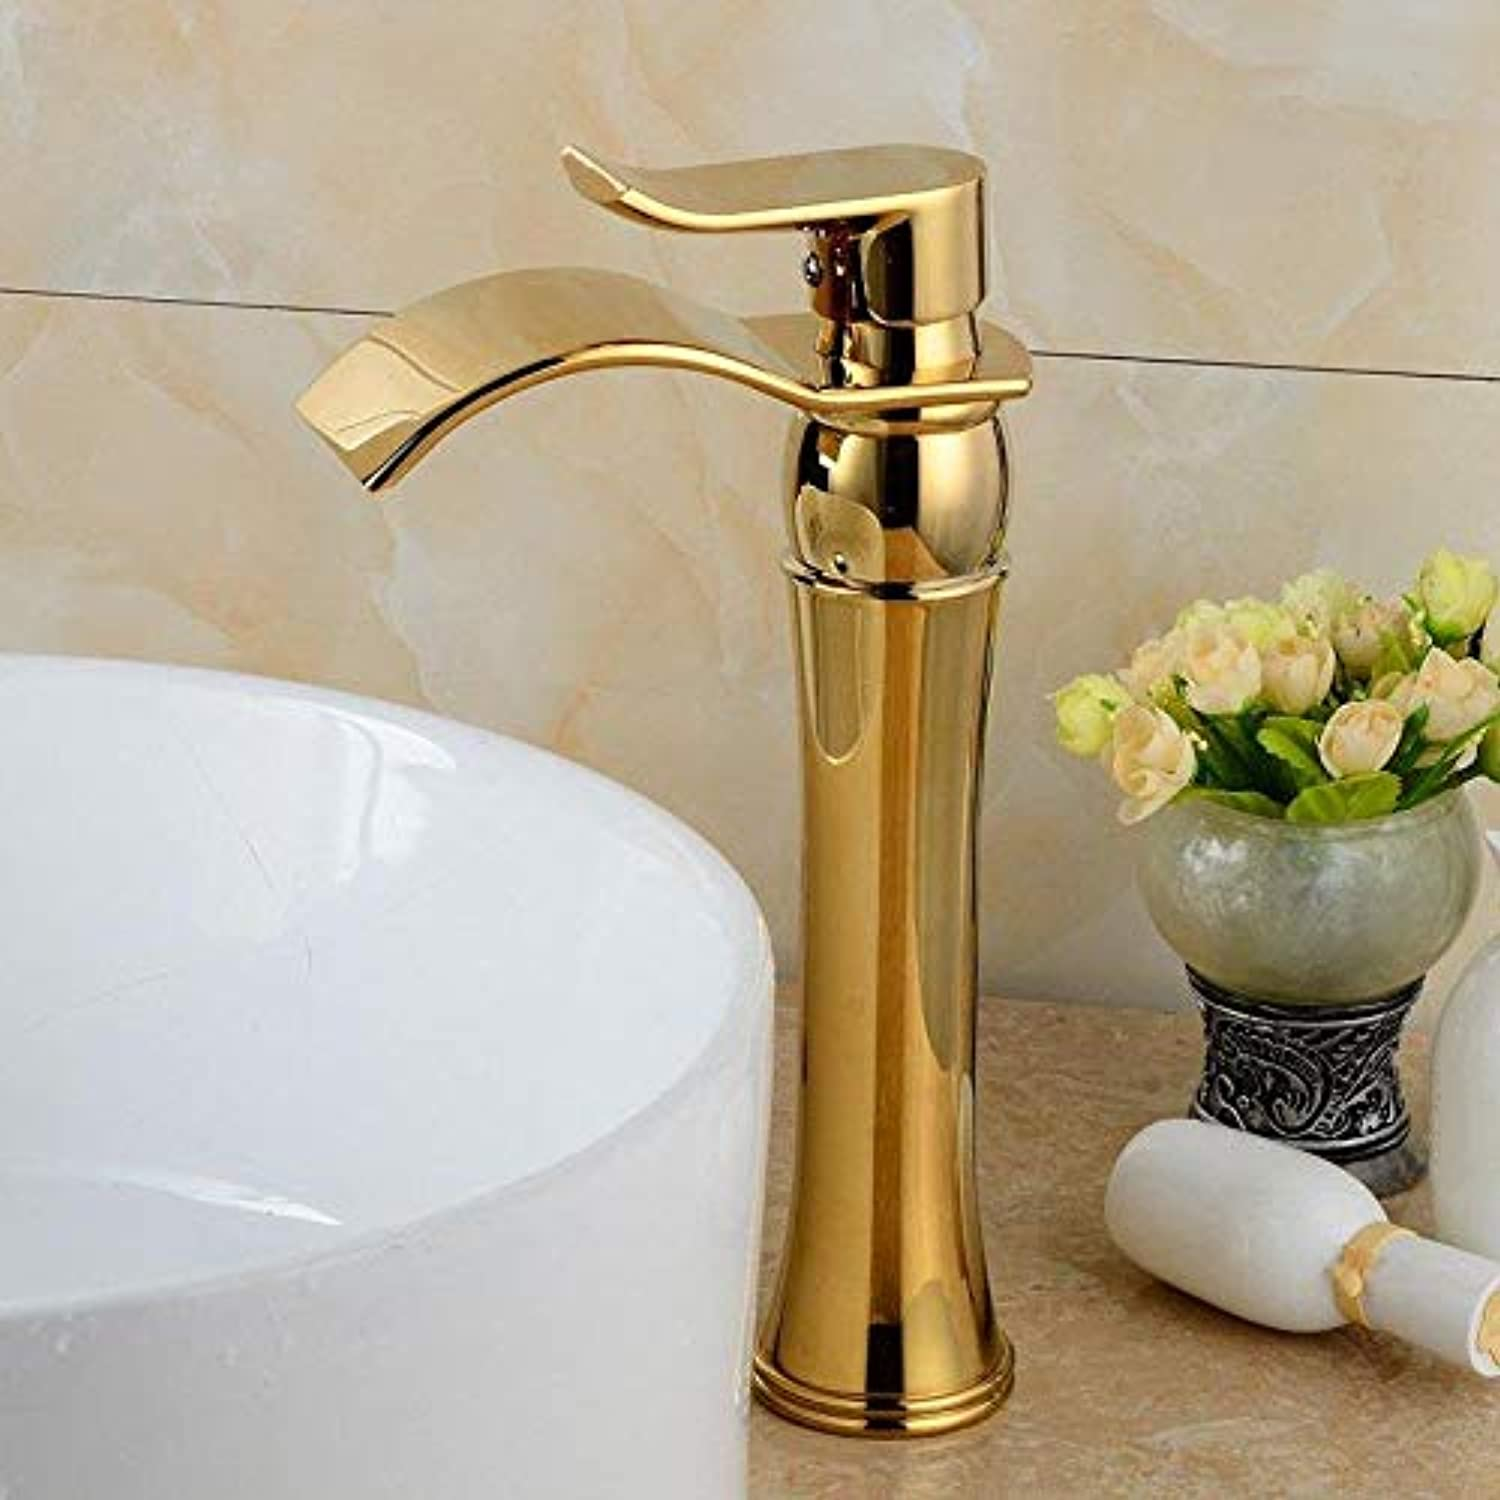 Taps Faucet Bathroom Faucet Hot and Cold Washbasin Faucet Waterfall Lifted gold-Plated Mixed Water Faucet